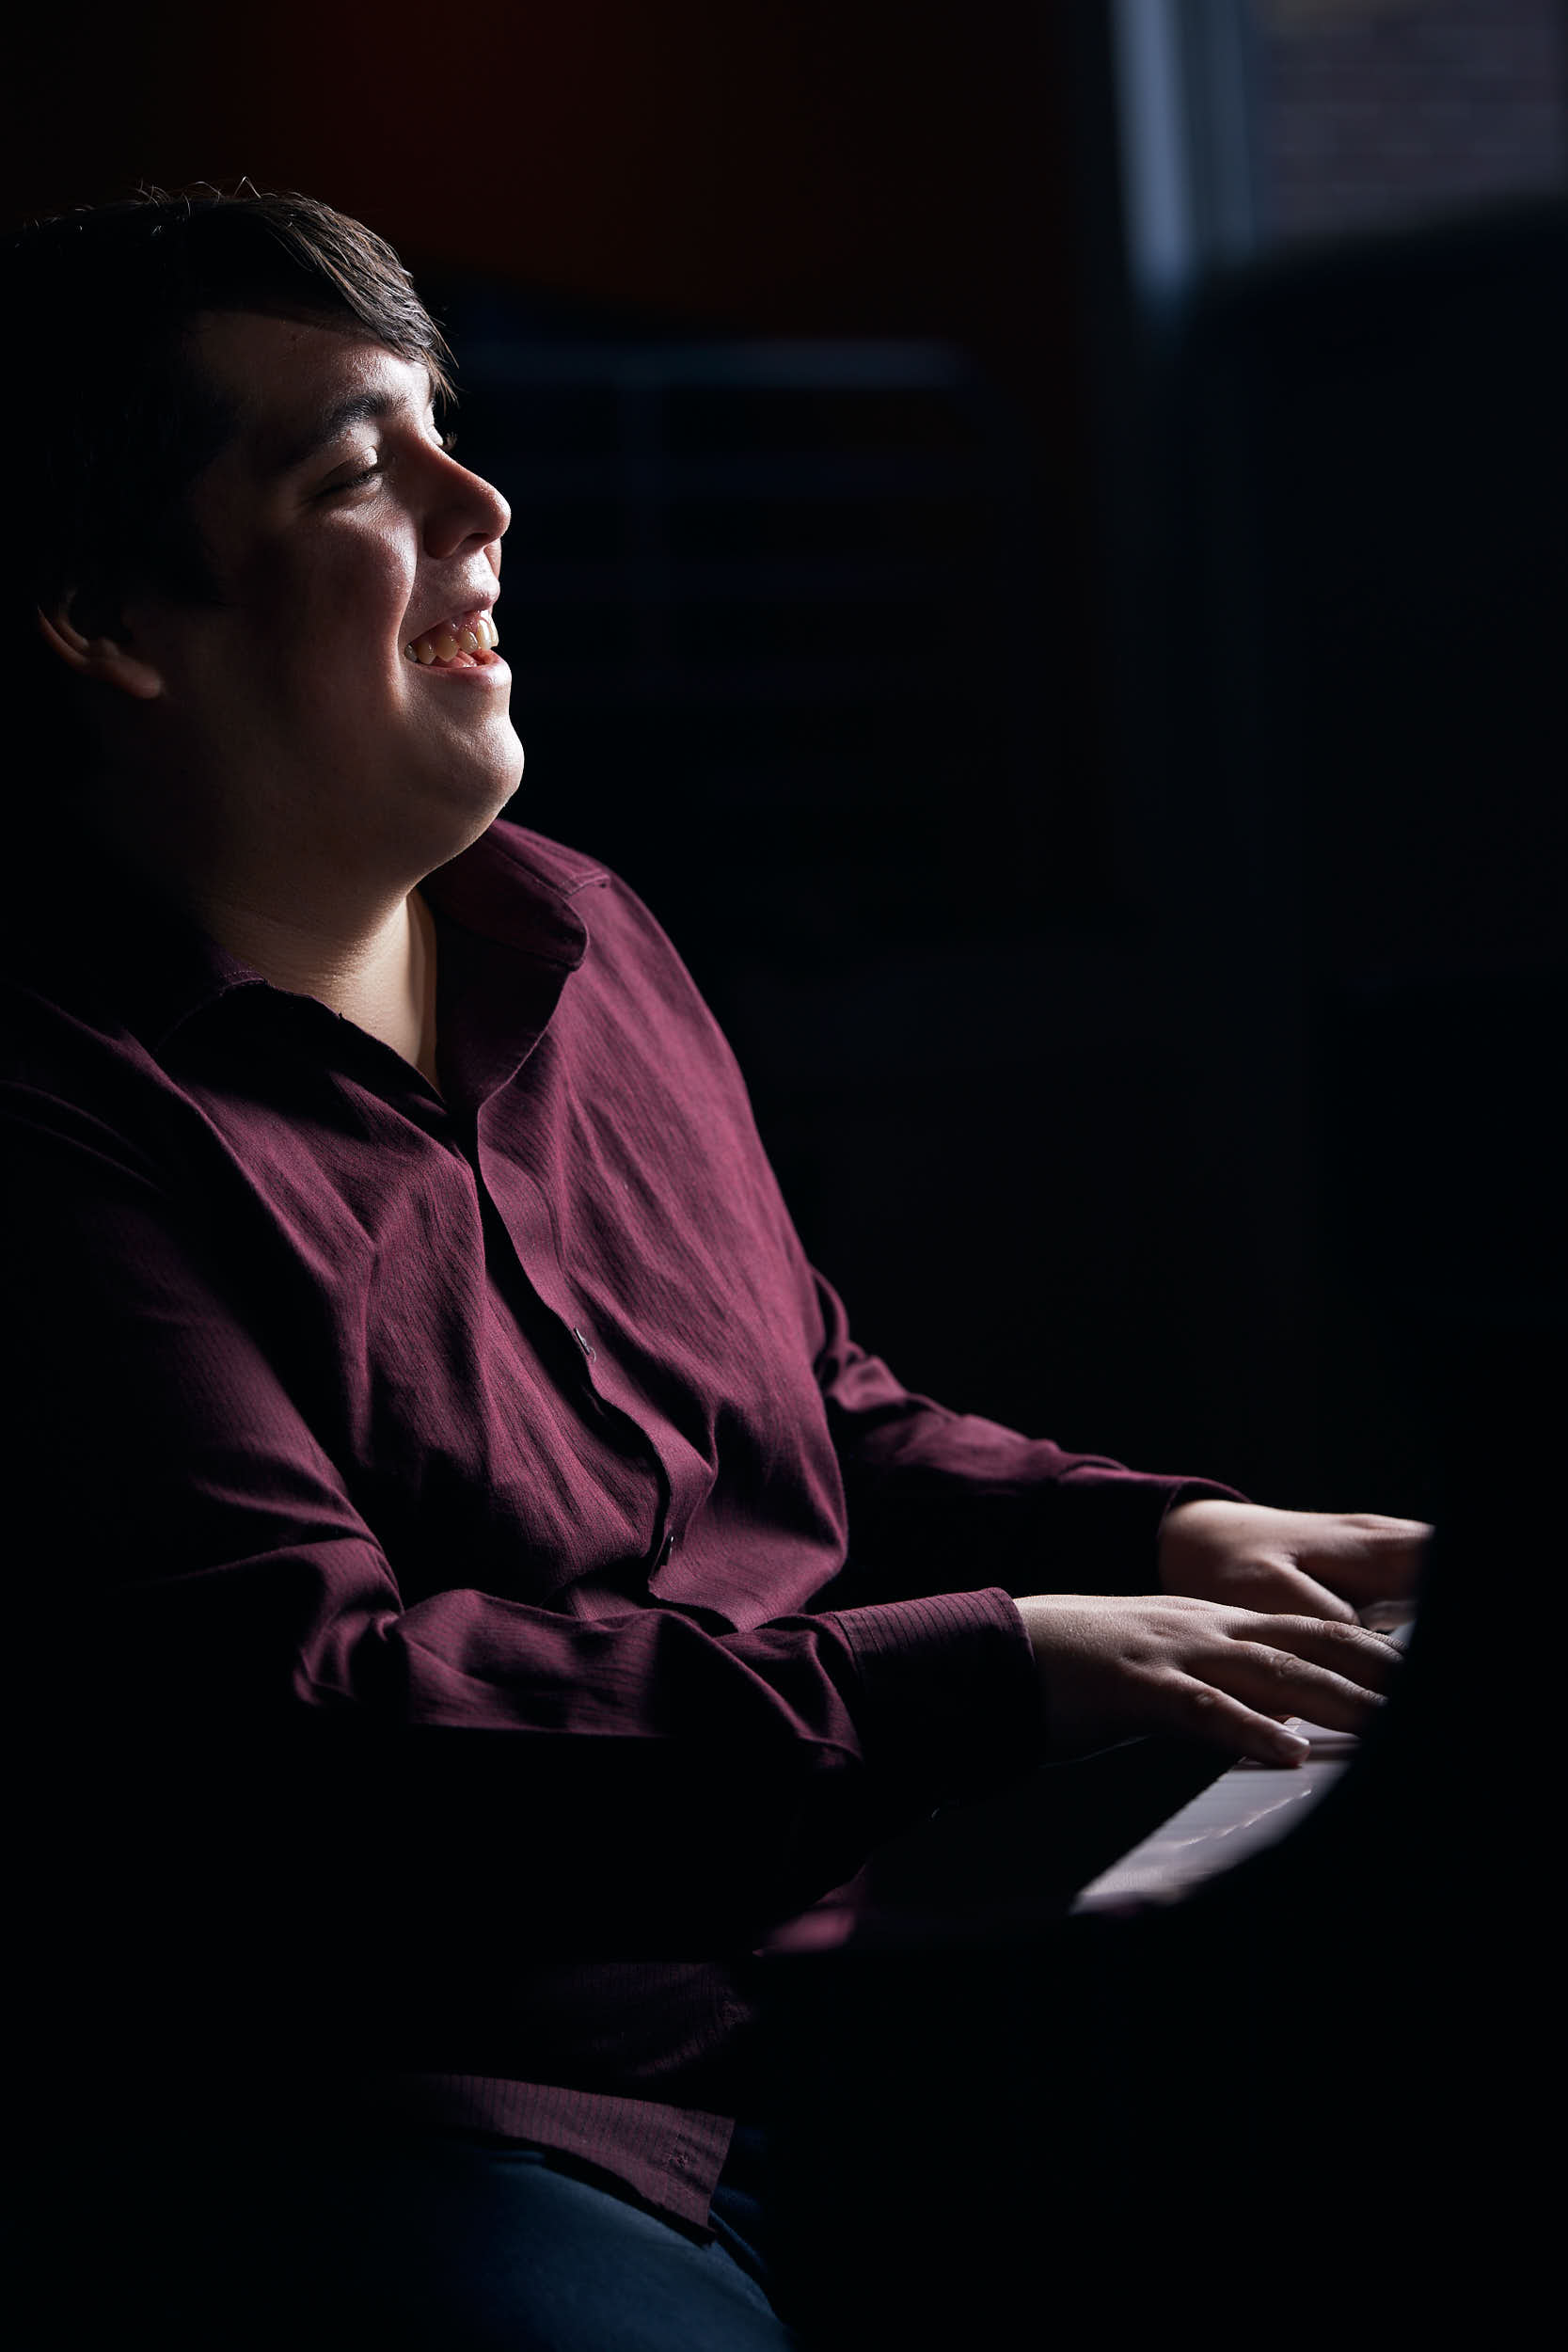 Diego Avilez plays piano.